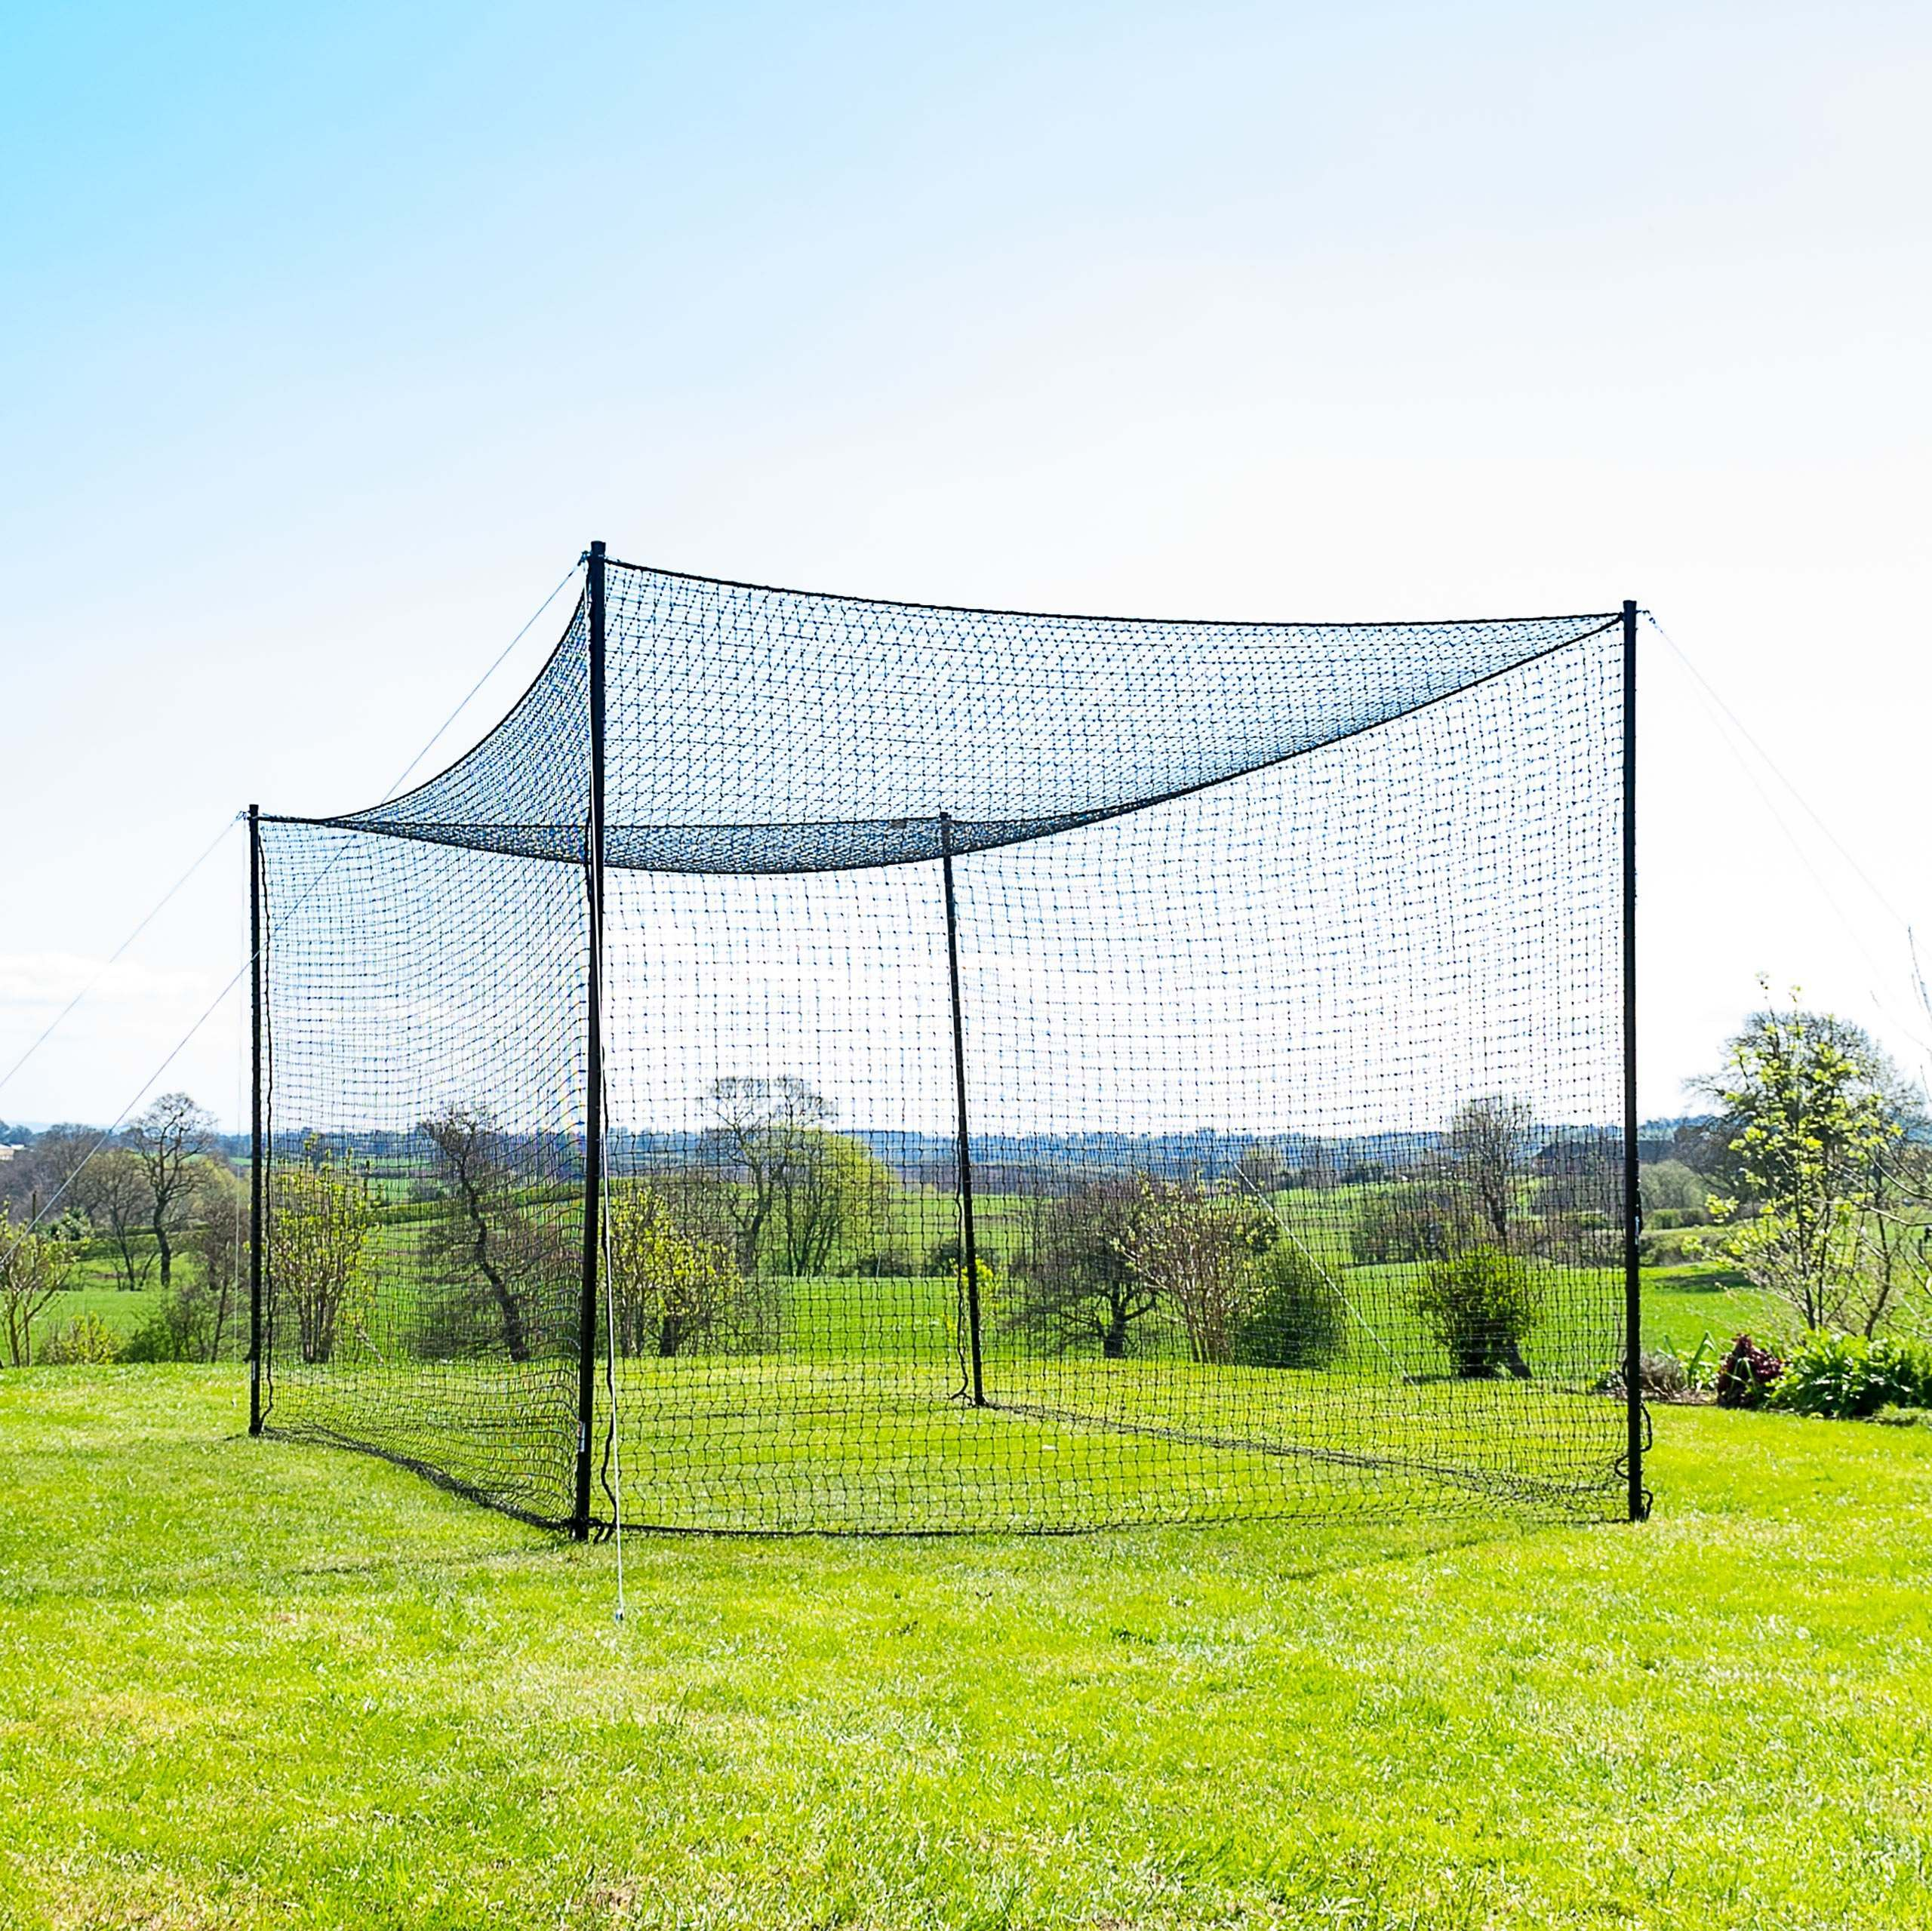 FORTRESS Ultimate Baseball Batting Cage - 20ft x 10ft x 10ft